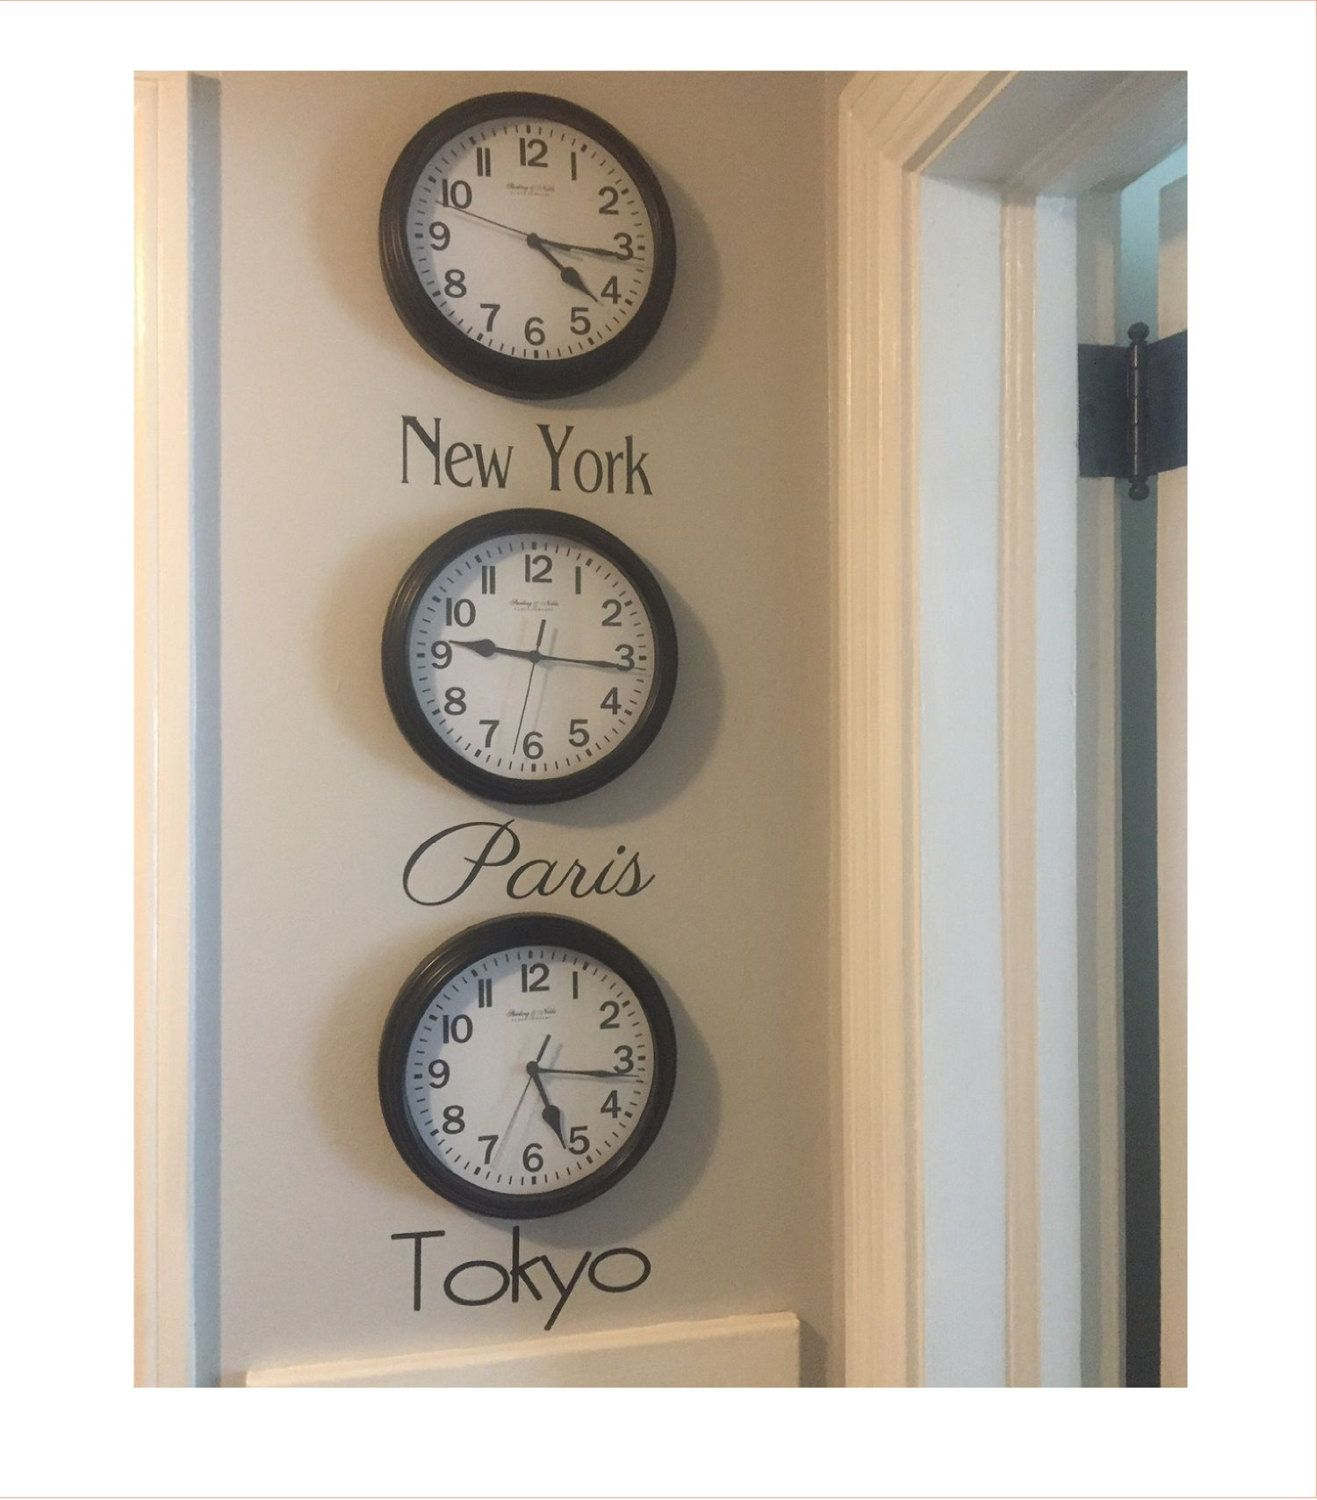 Time Zone Decal City Names Decal City Names for Clocks